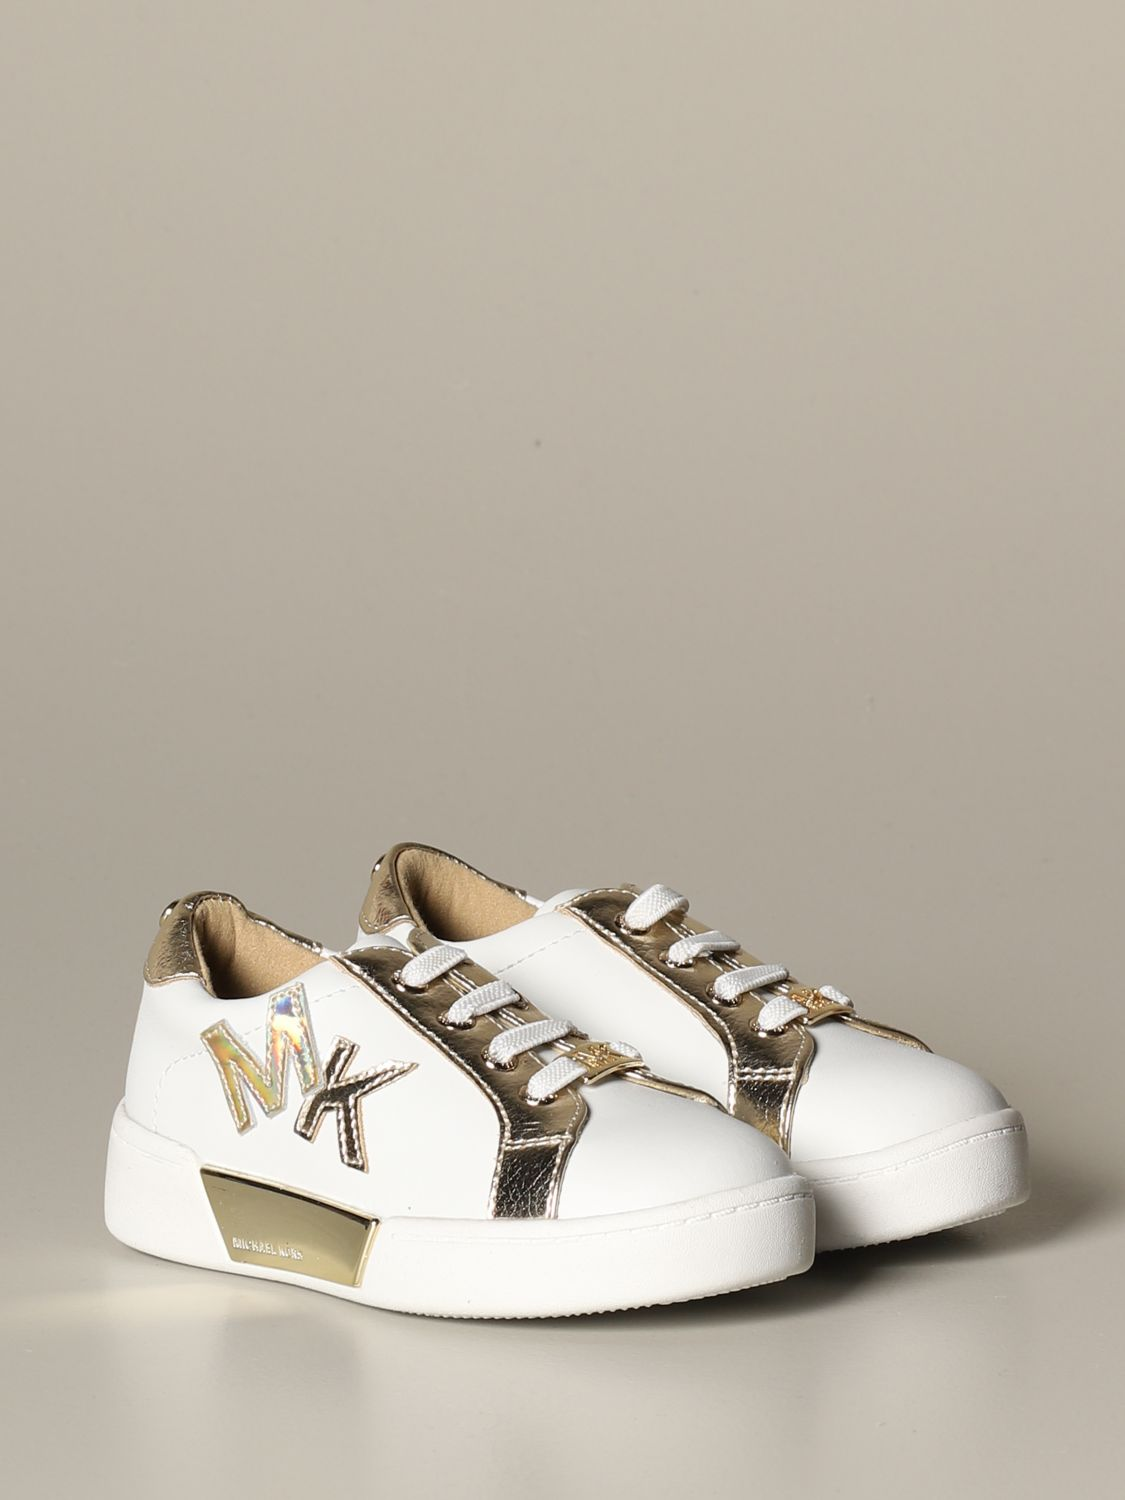 michael kors shoes for toddlers